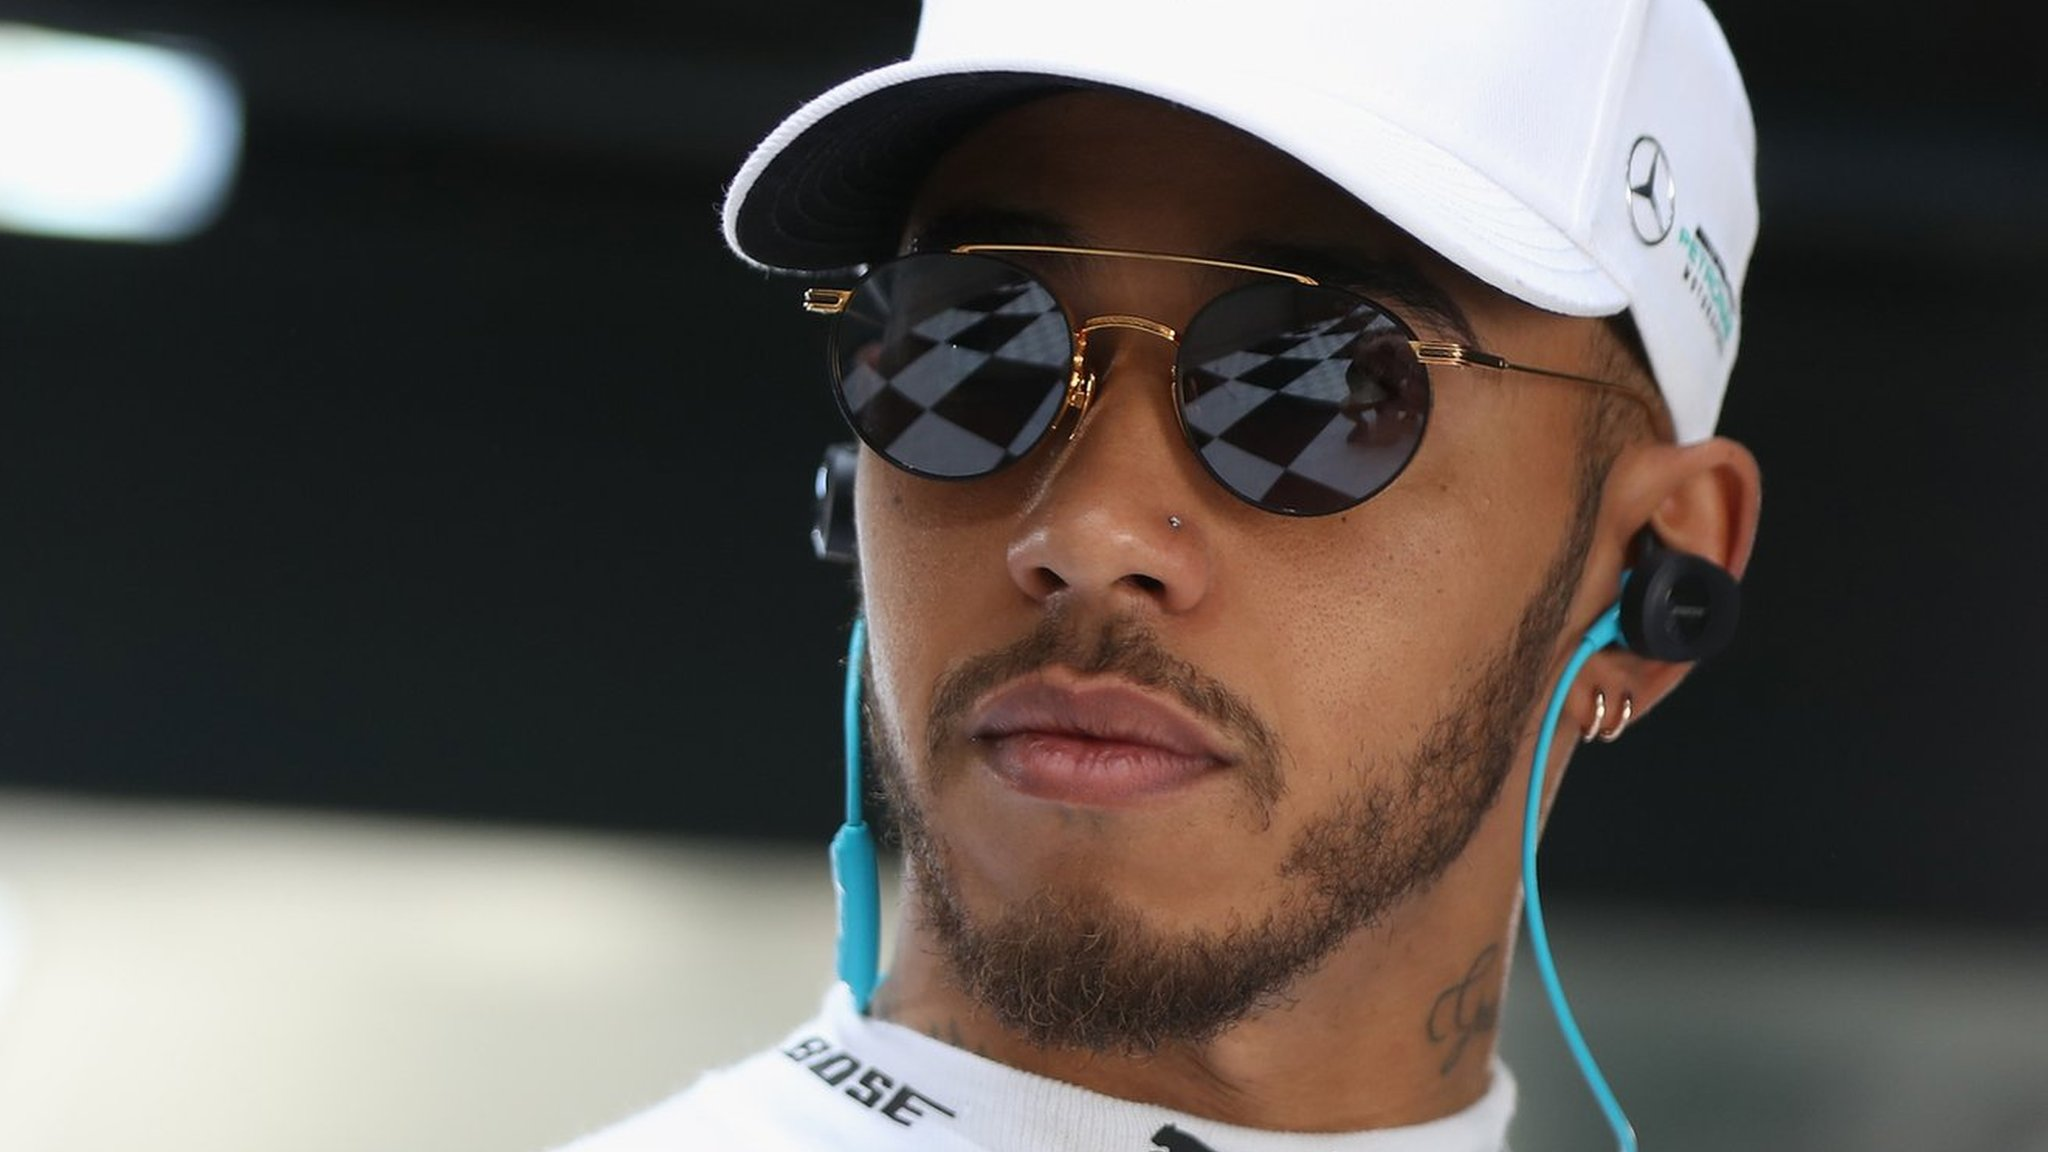 Hamilton confident he can beat race-winner Vettel to title